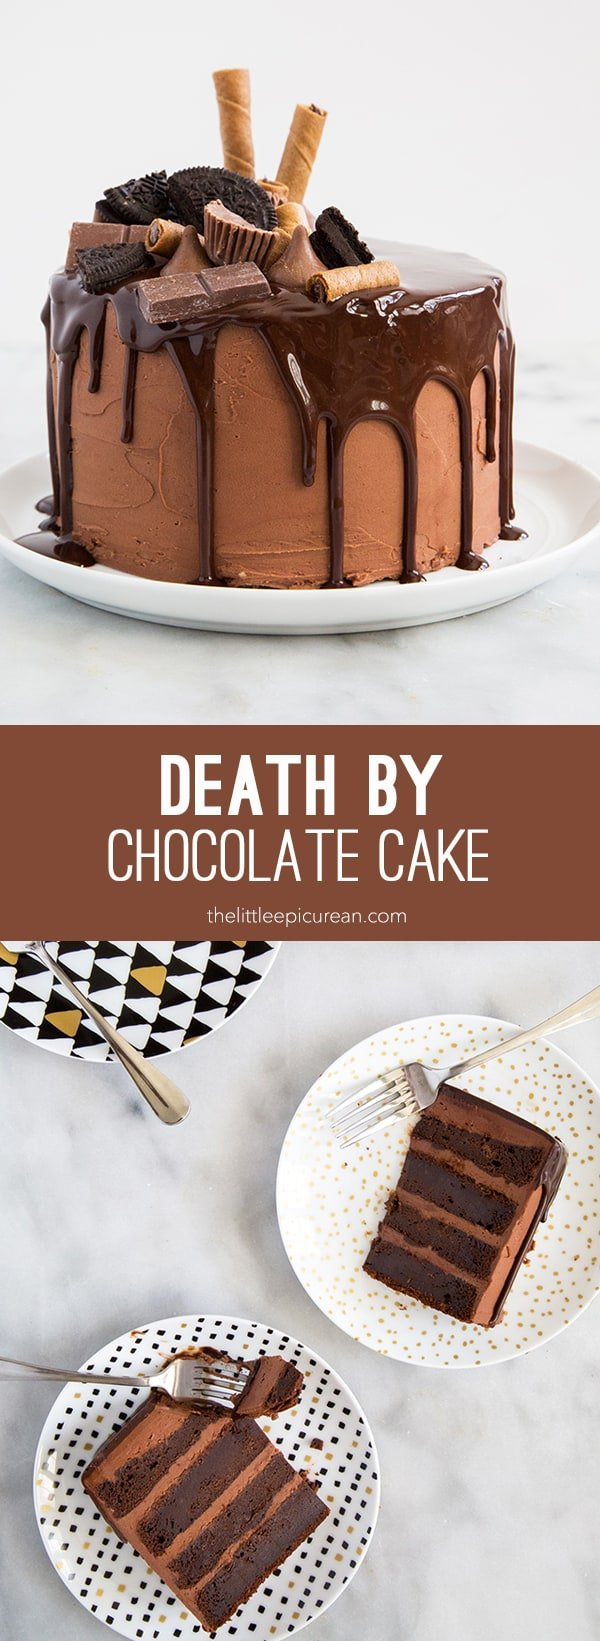 Death by Chocolate Cake- The Little Epicurean